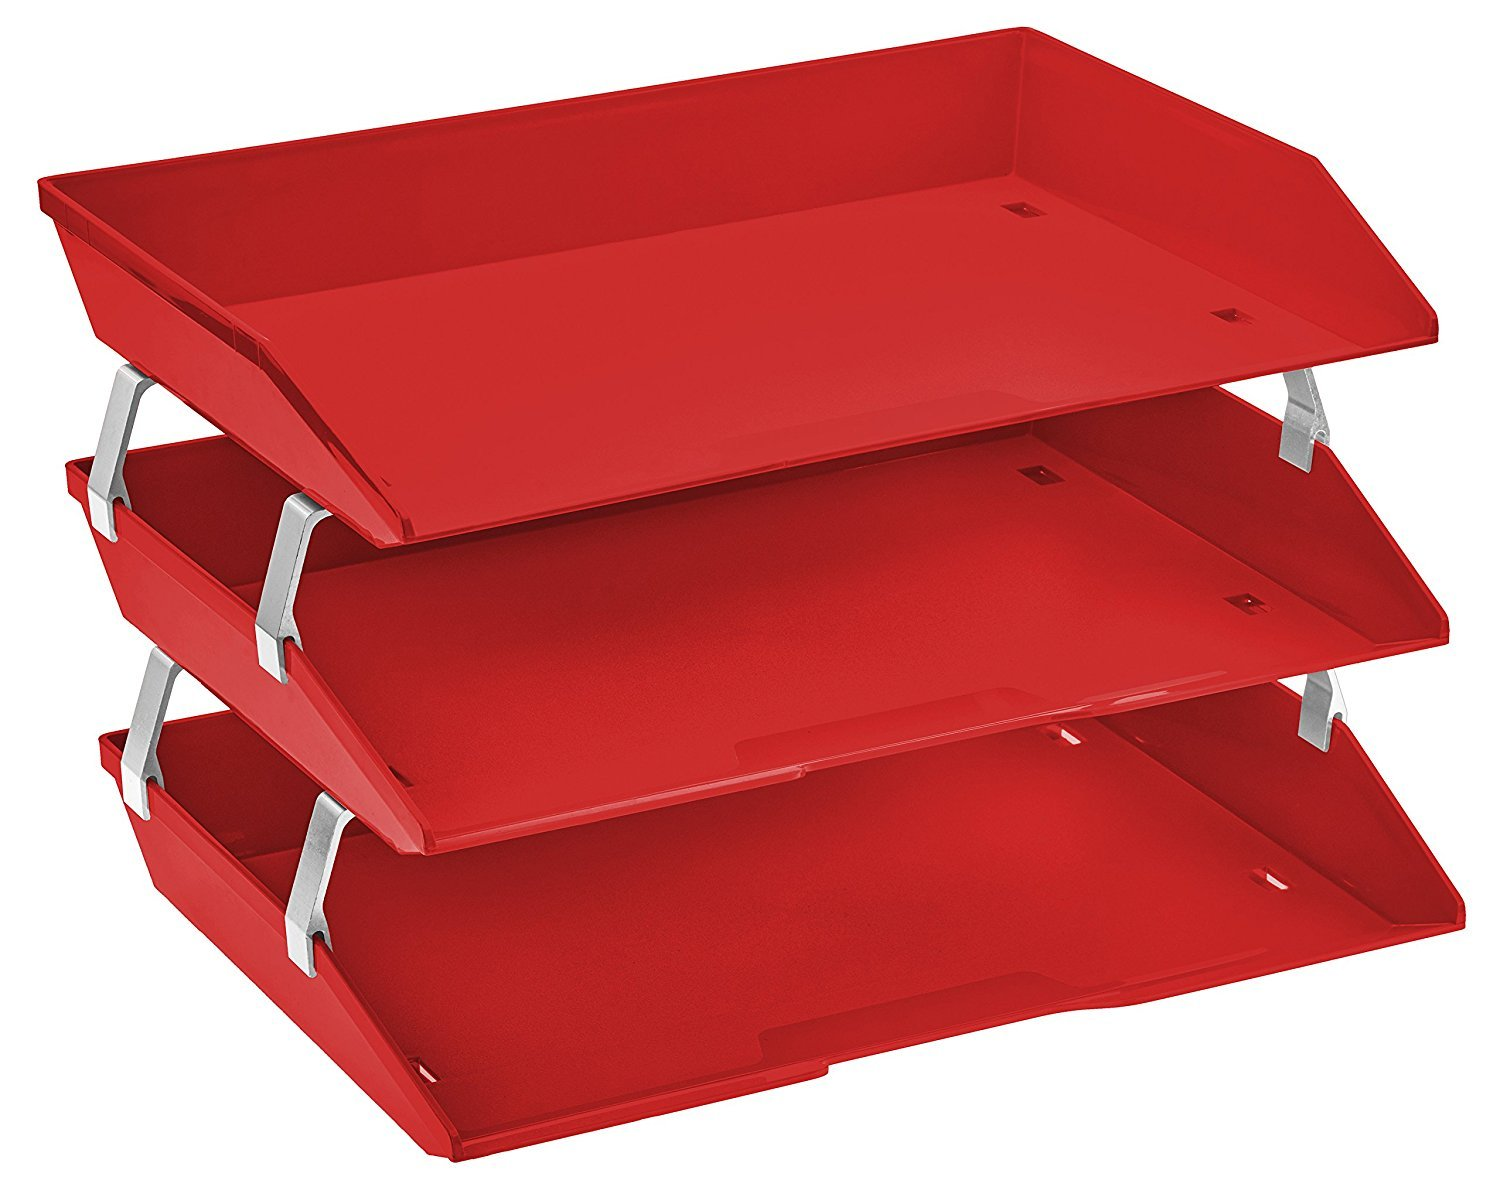 Acrimet Facility 3 Tiers Triple Letter Tray A4 (Solid Red Color) 255.VMO